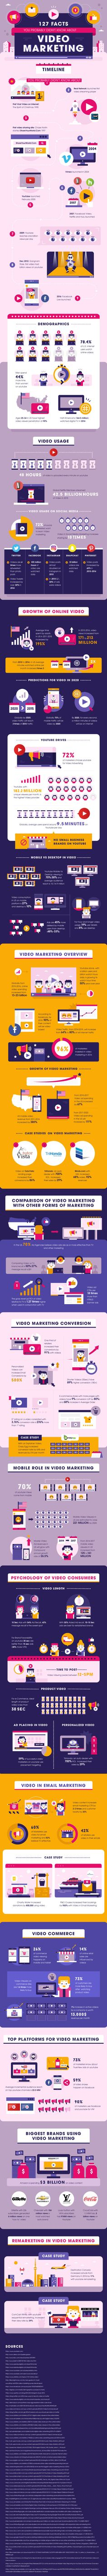 127 notable facts and stats about #VideoMarketing